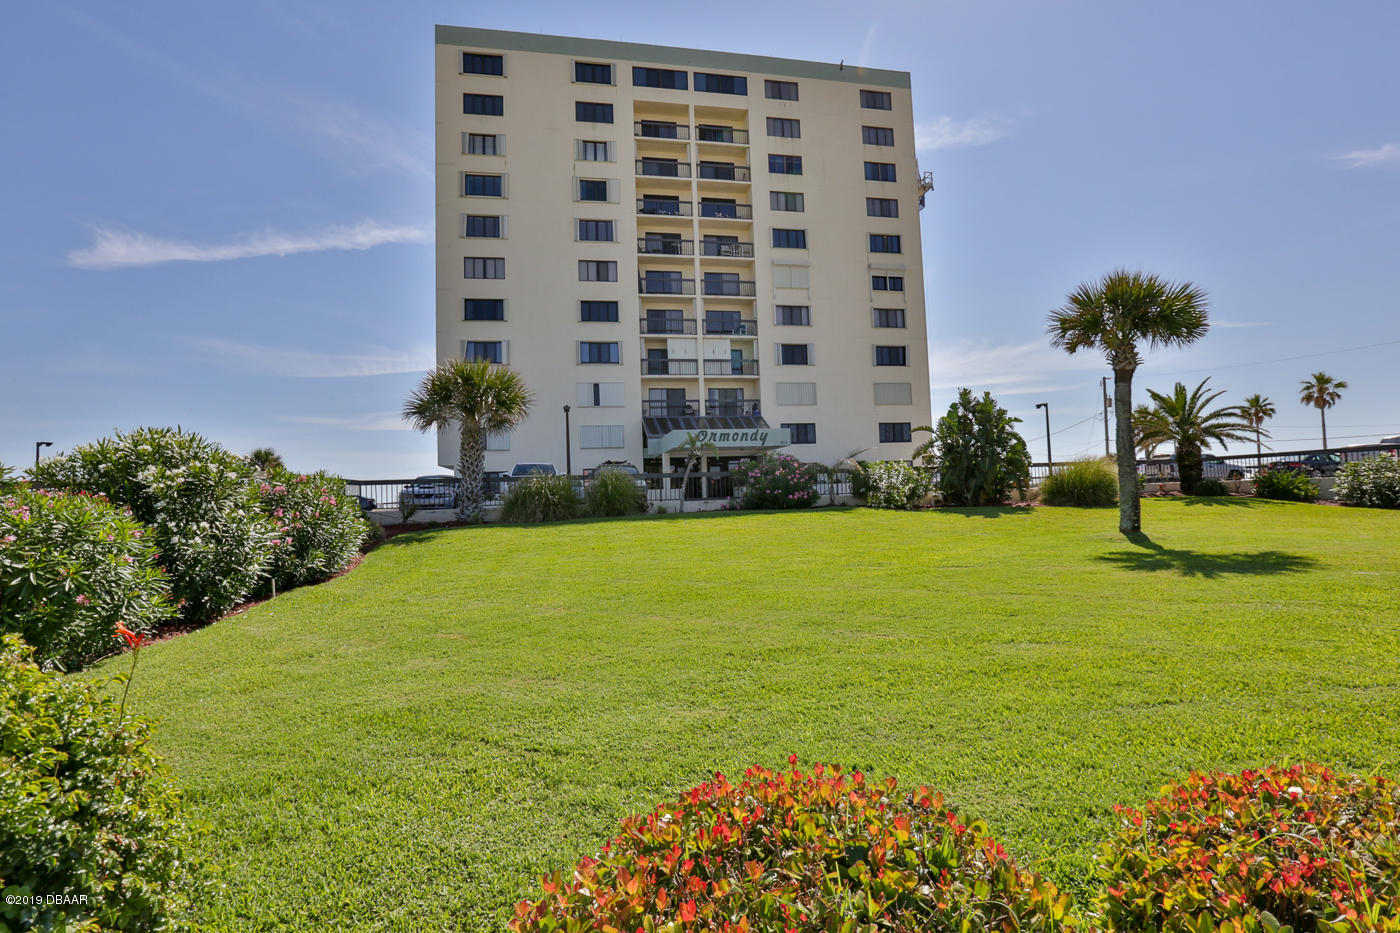 1513 Ocean Shore Boulevard, Ormond-By-The-Sea, Florida